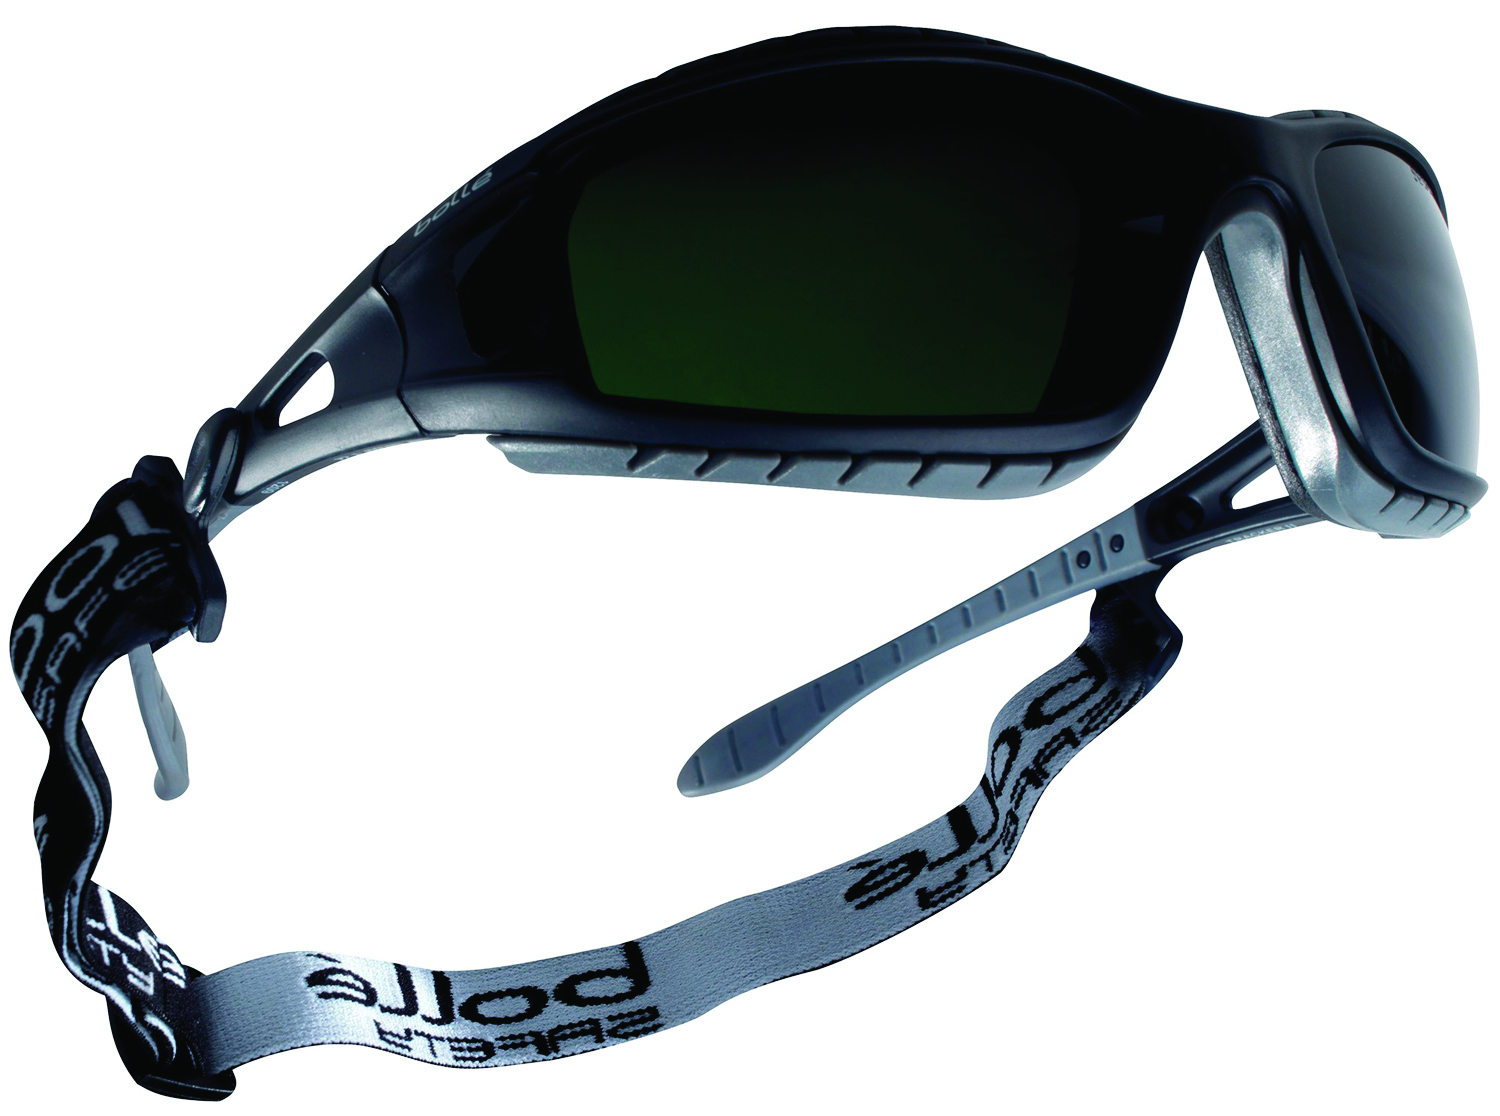 40089 - Tracker Safety Glasses/Goggles-Black/Gray Temples - Welding Shade 5 Polycarbonate Lens-----UOM: 1/EA